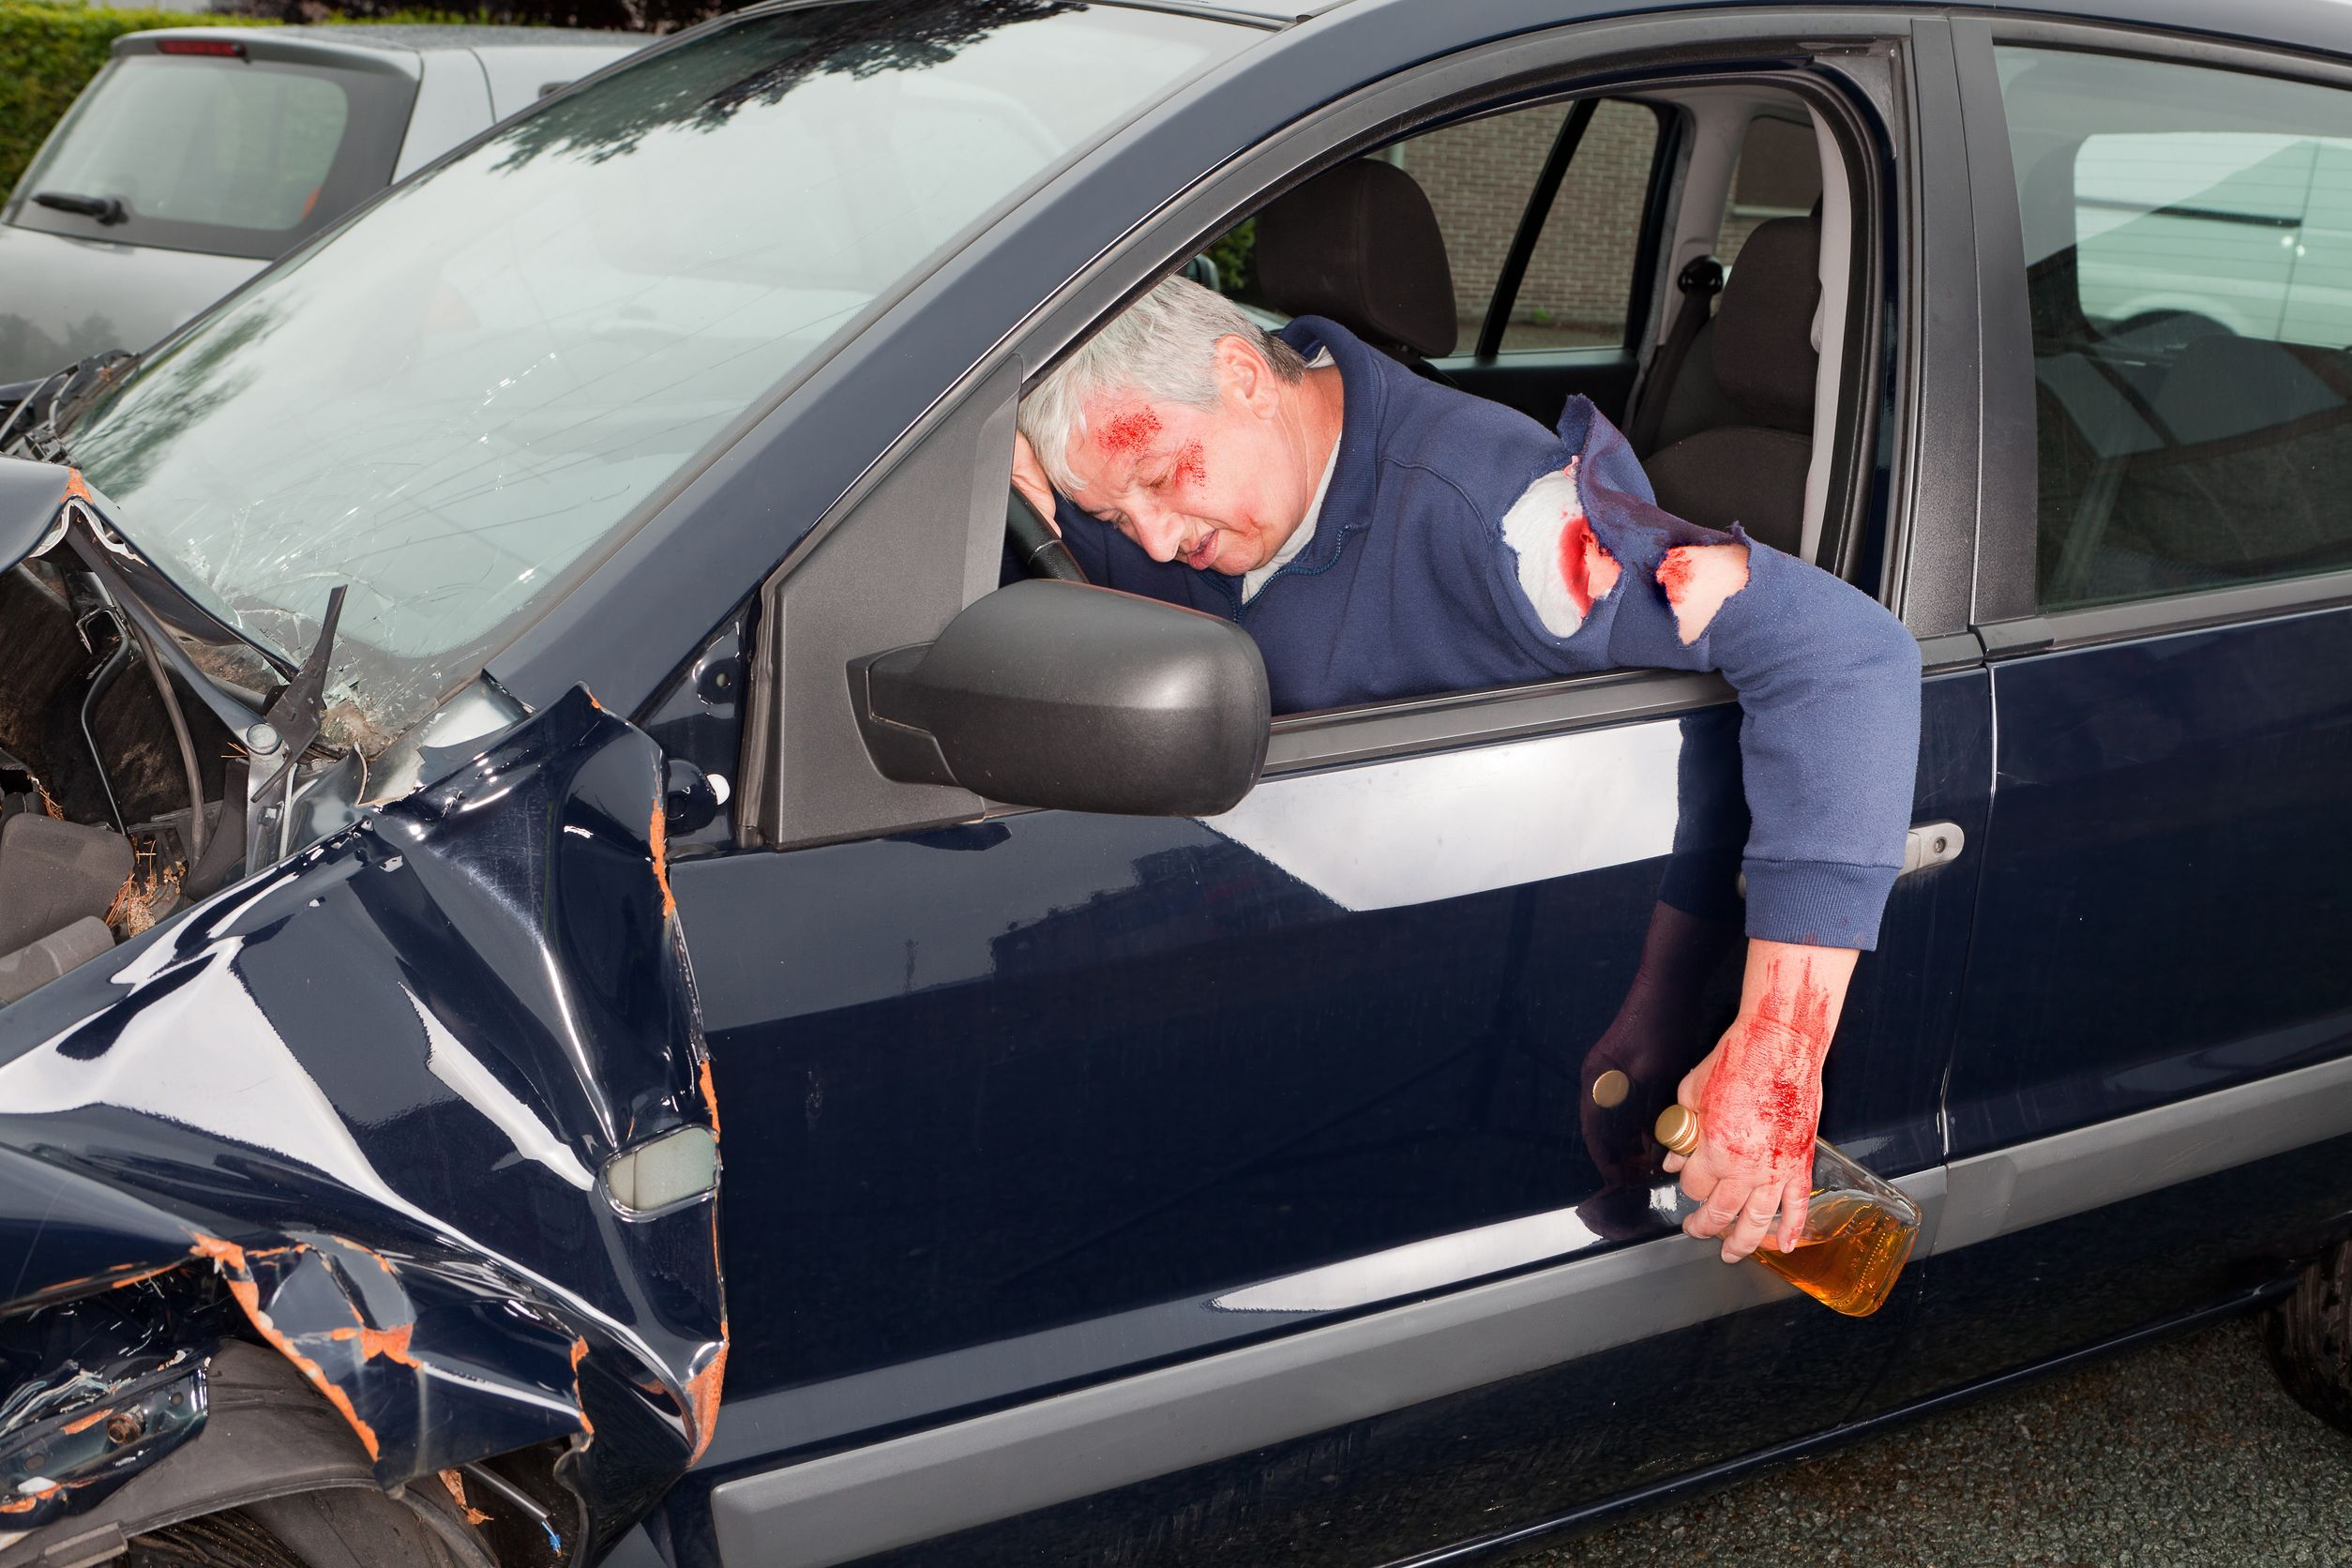 Dwi Dui Penalties For Adults In Dallas | Scarier Than Anything